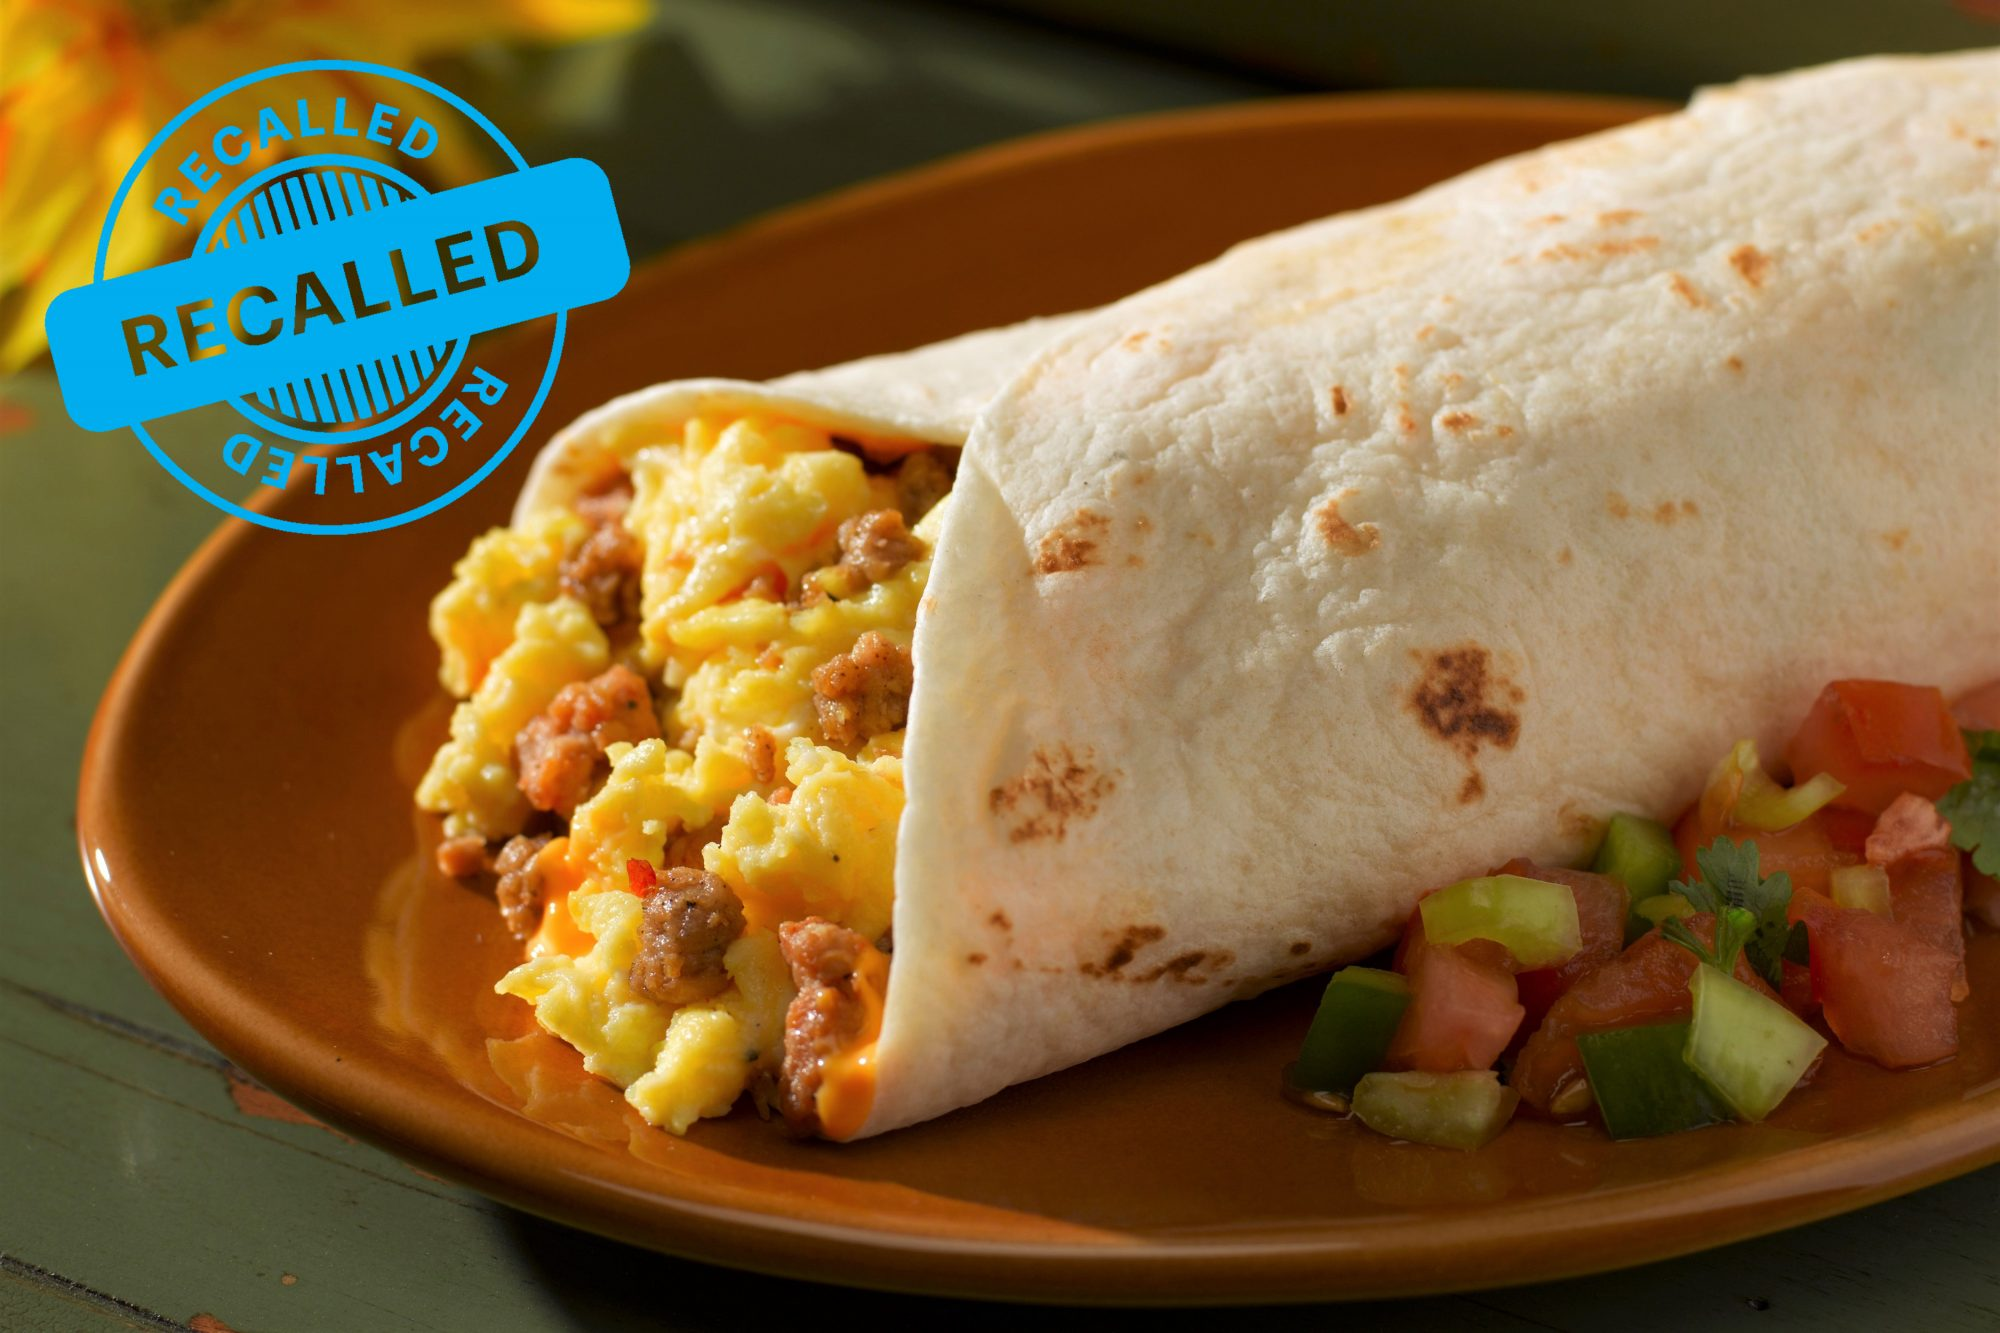 Breakfast Burritos Sold at Walmart, Target and Other Retailers Recalled for Potential Plastic Fragments